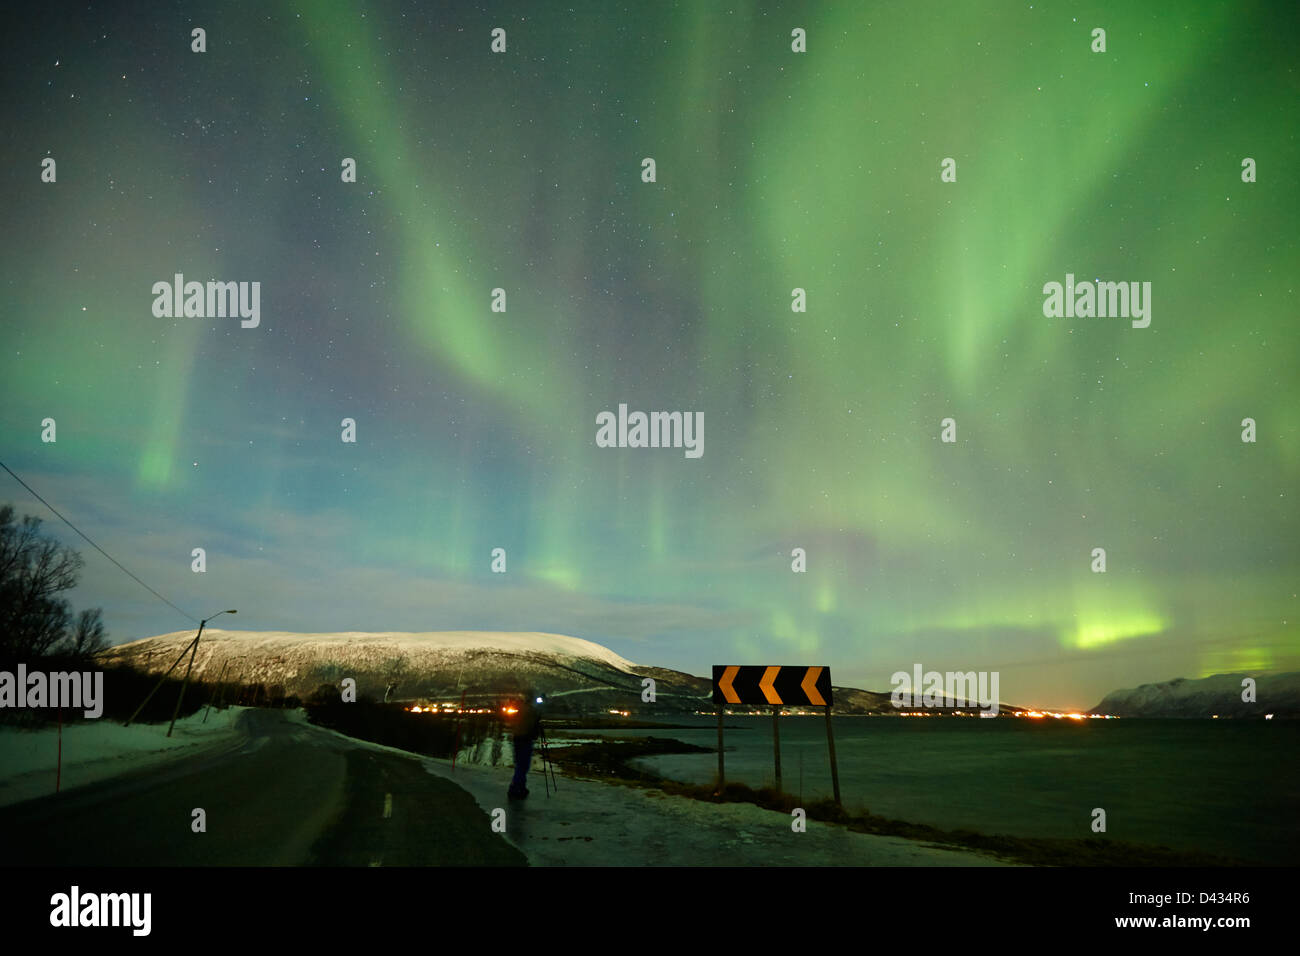 lone photographer takes photos of swirling northern lights aurora borealis over fjord near tromso in northern norway - Stock Image